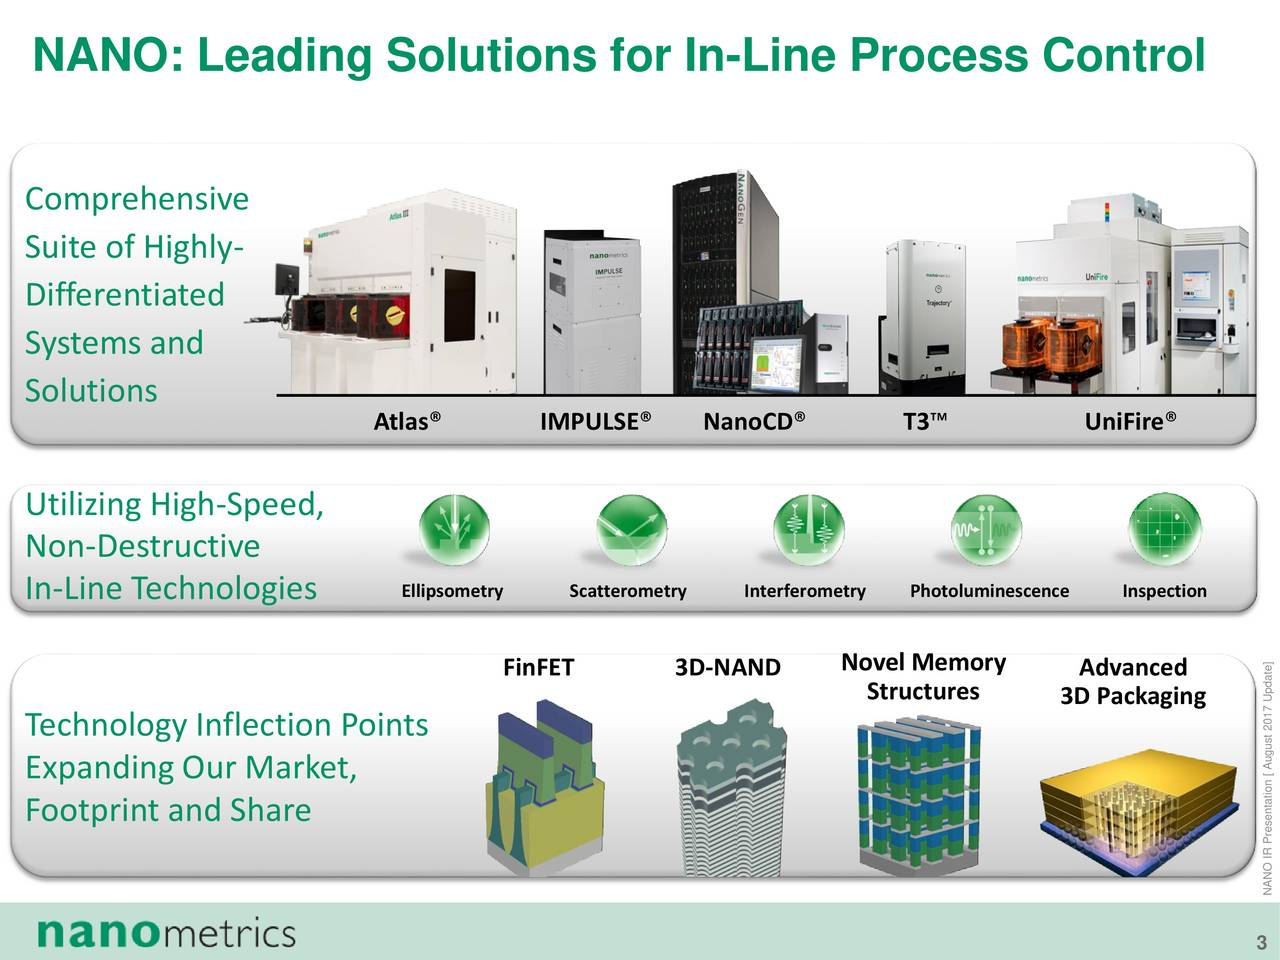 Comprehensive Suite of Highly- Differentiated Systems and Solutions Atlas IMPULSE NanoCD T3 UniFire Utilizing High-Speed, Non-Destructive In-Line Technologies Ellipsometry Scatterometry InterferometrPhotoluminescenceInspection FinFET 3D-NAND Novel Memory Advanced Structures 3D Packaging Technology Inflection Points Expanding Our Market, Footprint and Share NANO IR Presentation [ August 2017 Update]